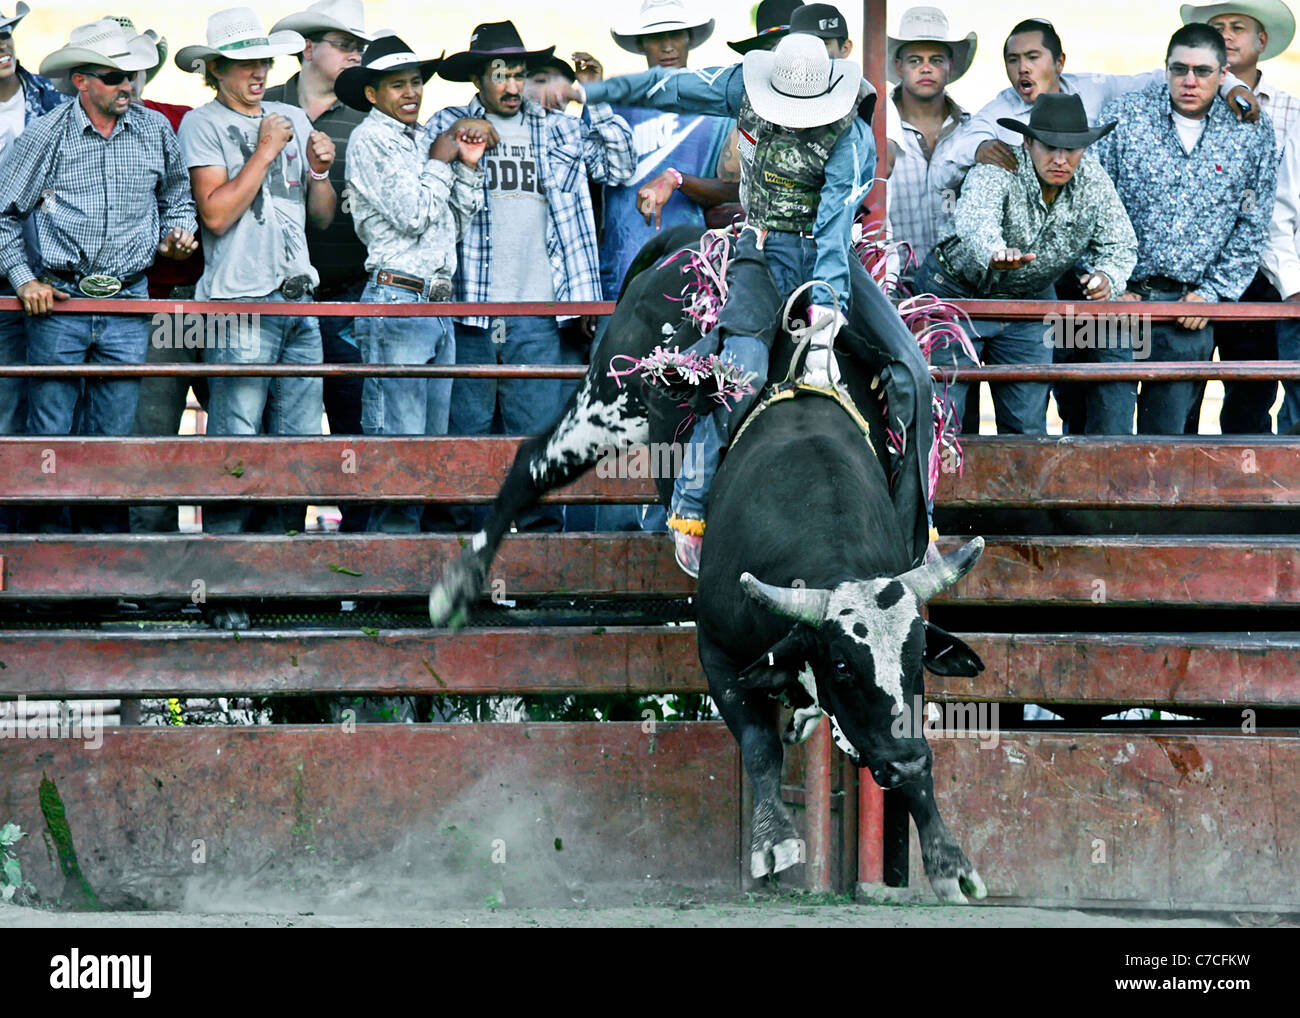 Bull riding competitor during the rodeo held at the Crow Agency reservation in Montana during the annual Crow Fair. - Stock Image